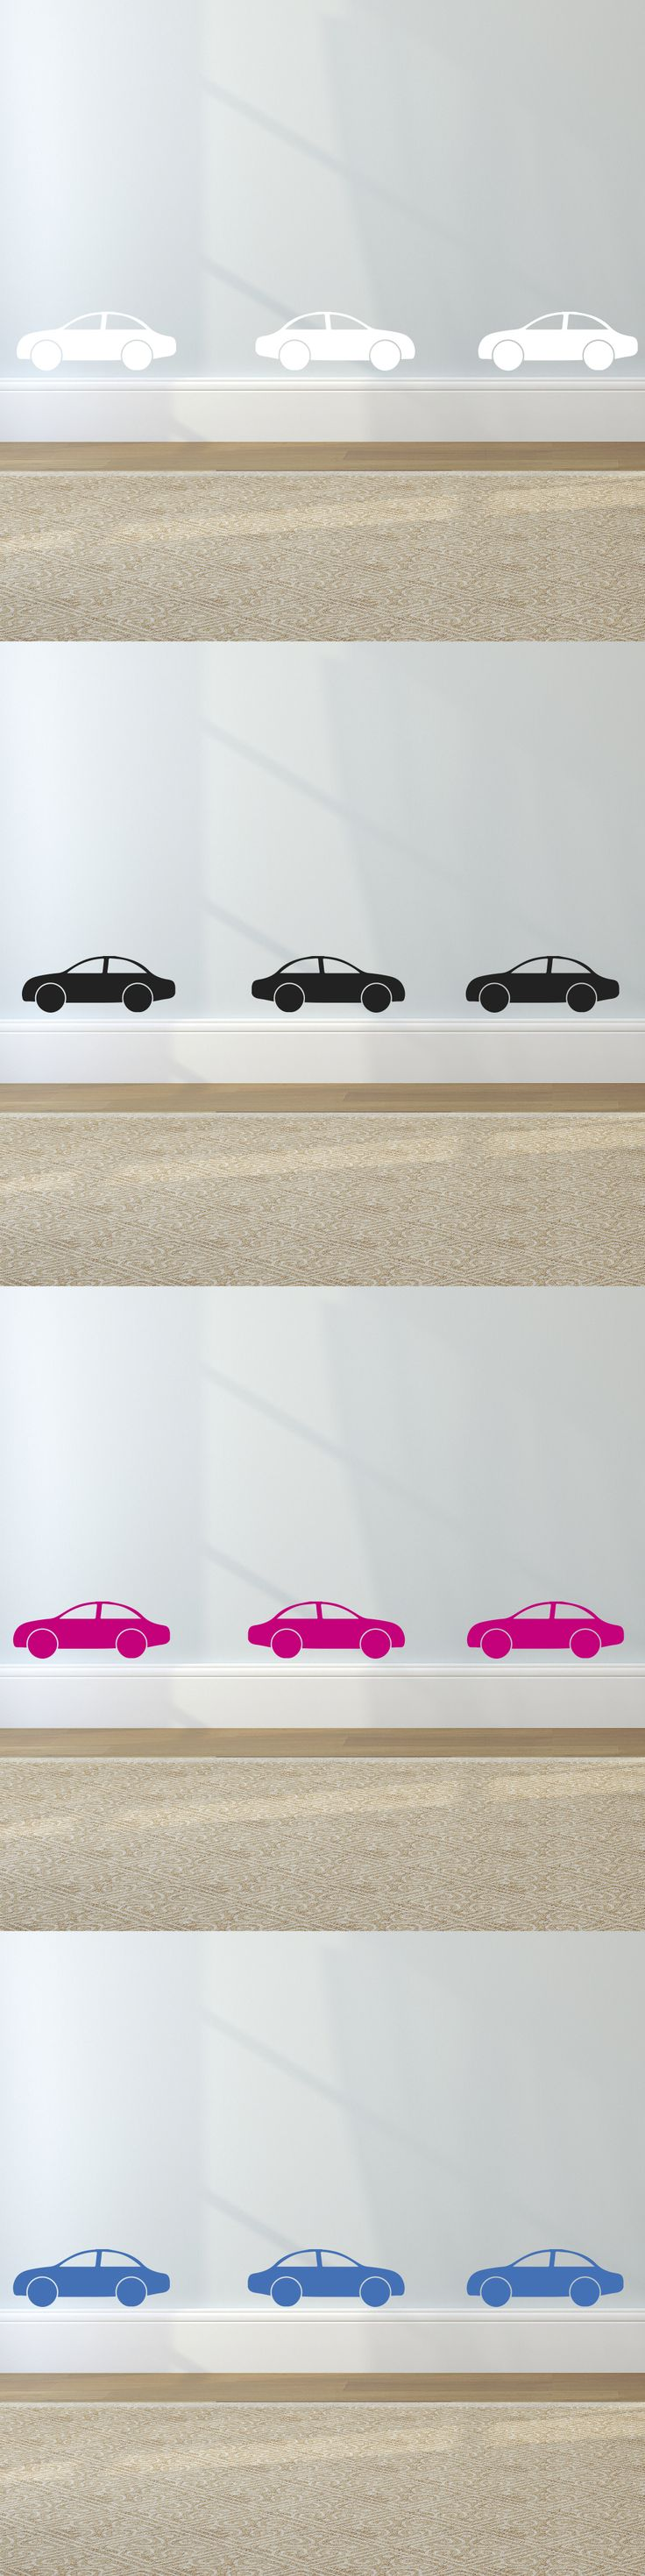 Set of Sports Cars Pattern Childs Room Decor Vinyl Wall Sticker  These car wall stickers can be used to transform your child's bedroom with ease.  Set of 6  Colours: White, Black, Blue, Pink  Dimensions: Cars measure 24.5 x 9.0 cm. At Jules Design Studios we use high quality vinyl that has a matt opaque finish, giving your wall art a finish that looks beautifully hand painted.